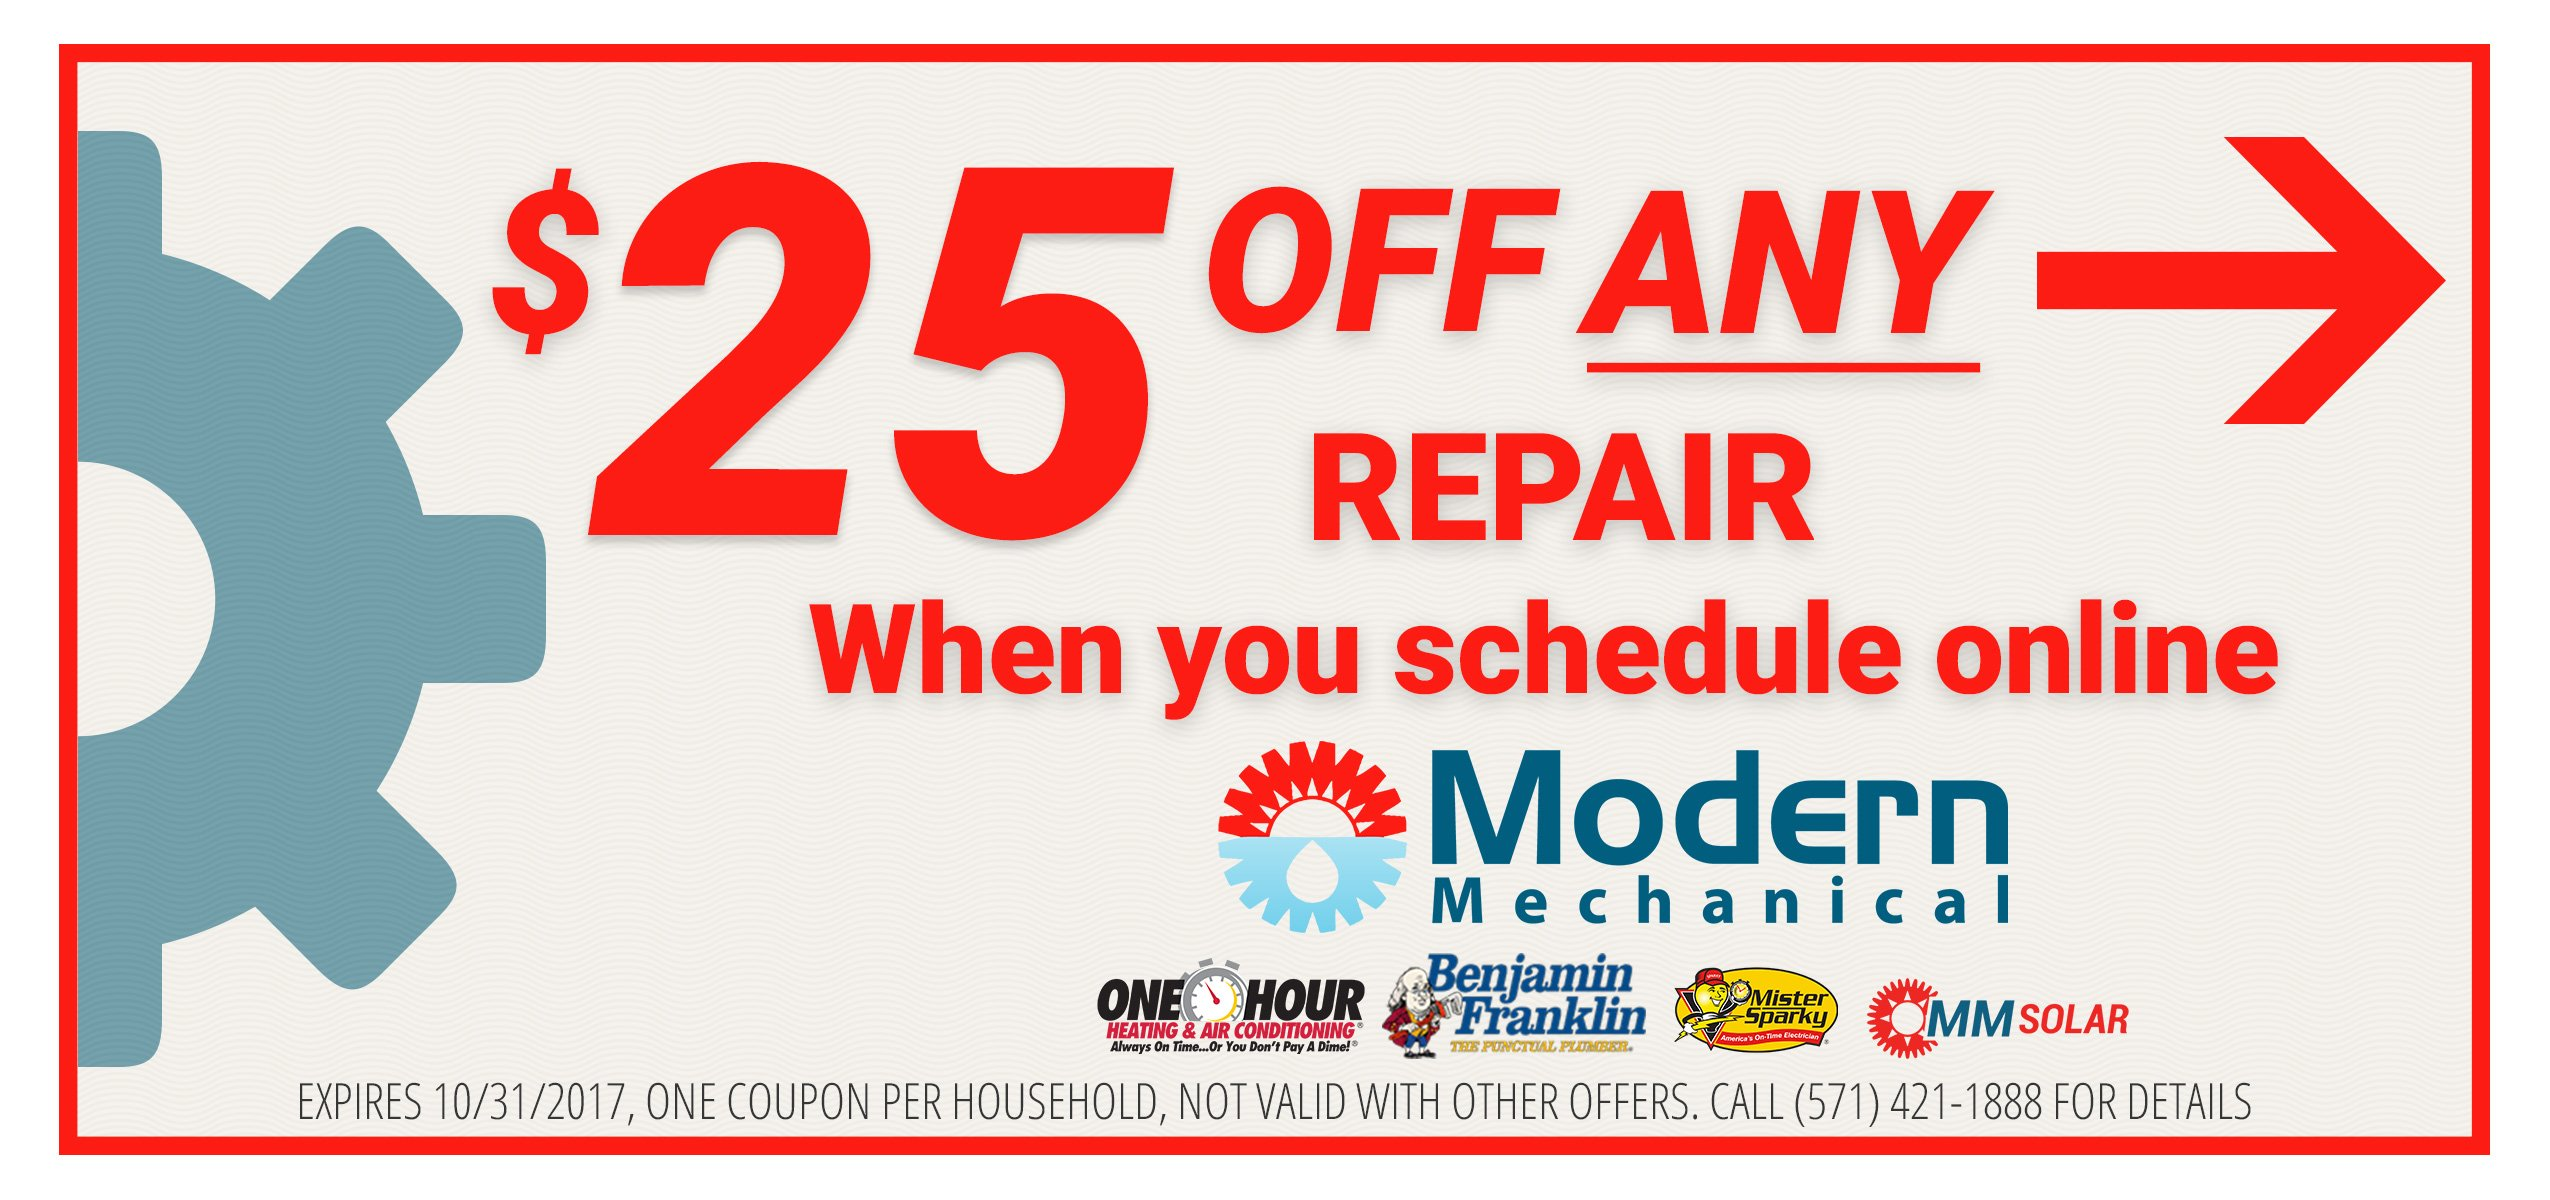 HVAC Plumbing Electrical Solar Specials & Coupons